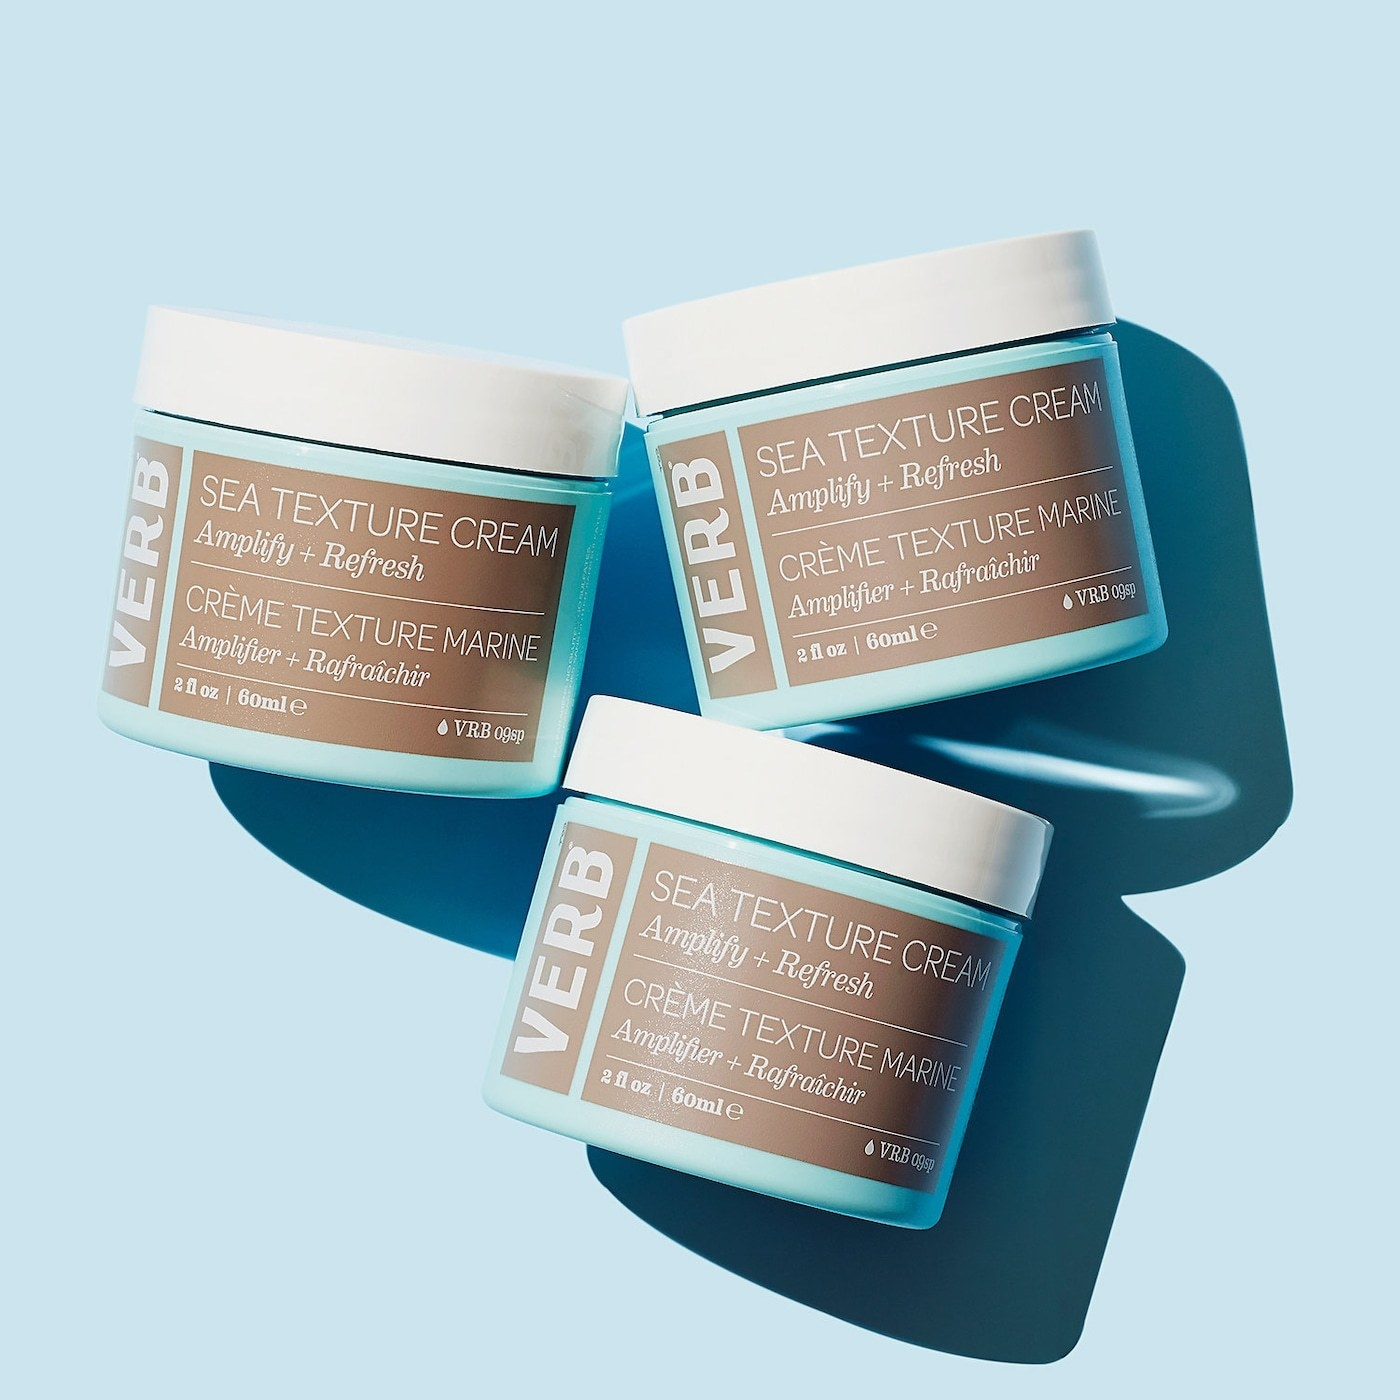 A blue and brown tub of texture cream